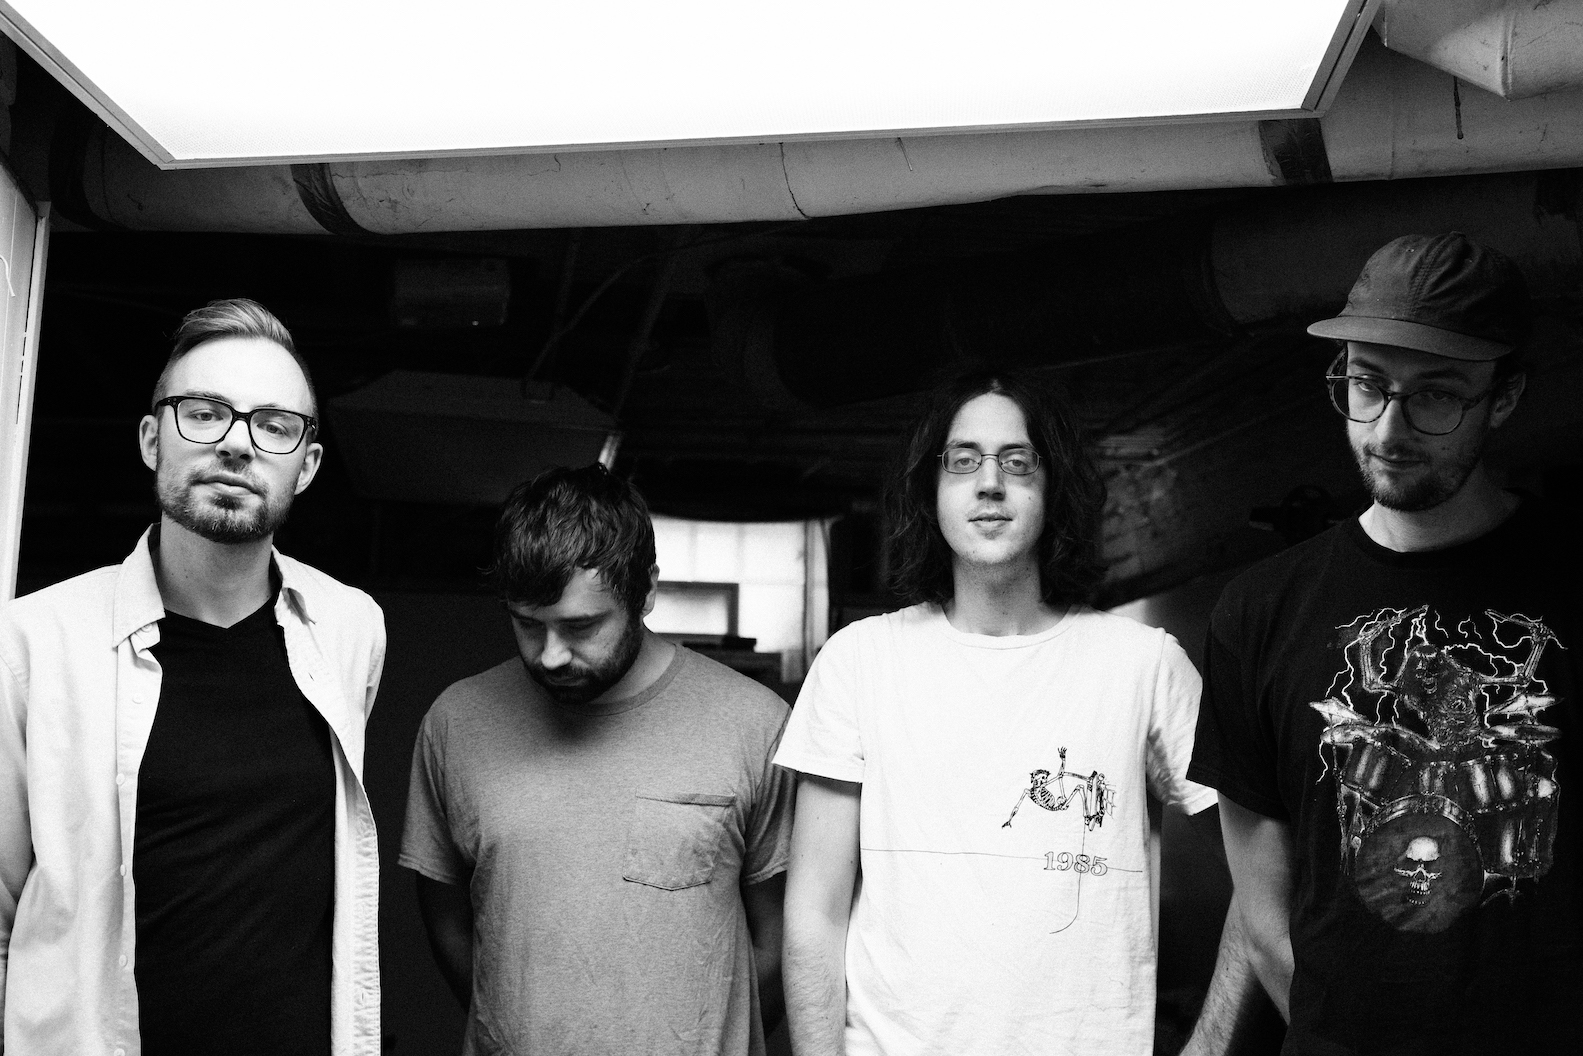 Cloud Nothings to release new album 'The Shadow I Remember'